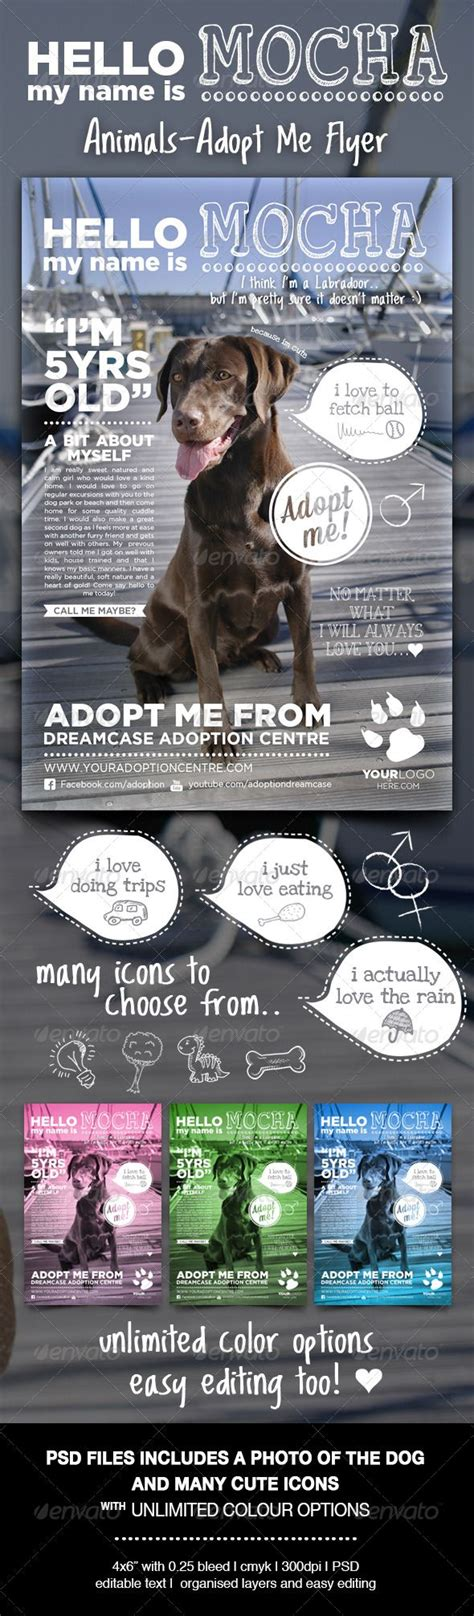 Animals Adopt Me Flyer Animals Flyers And Templates Adopt Me Flyer Template